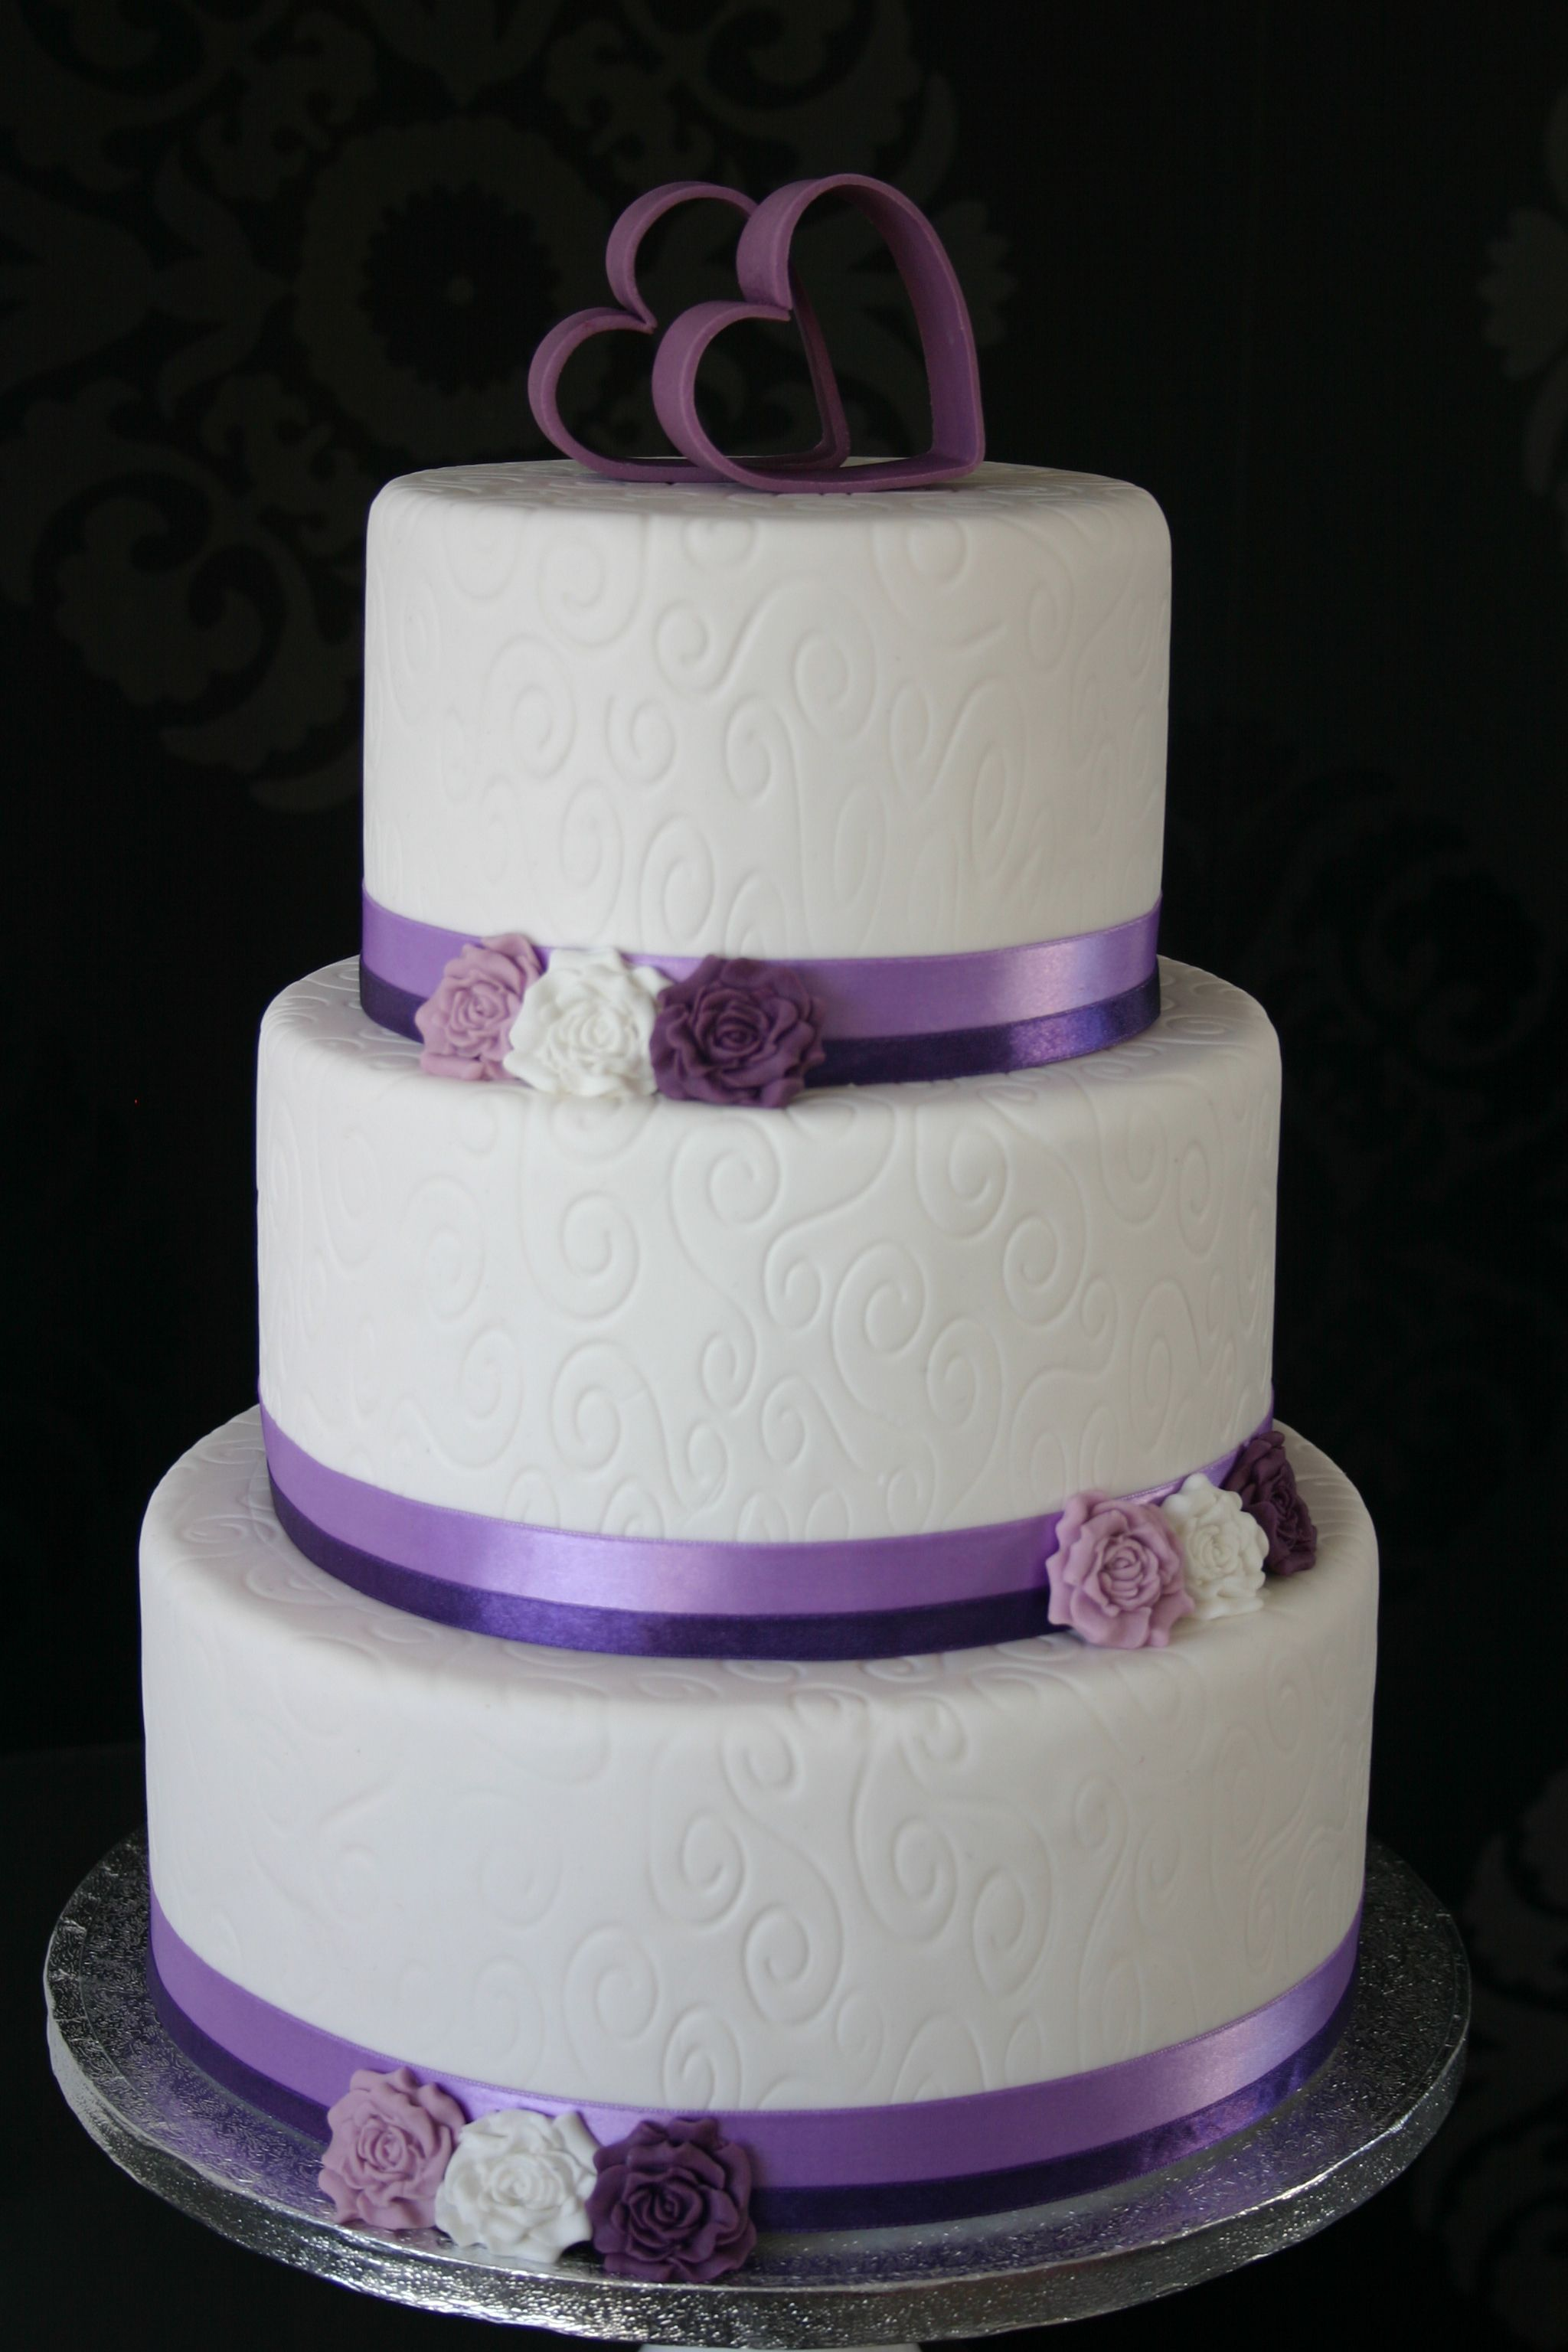 Simple And Elegant With A Touch Of Purple The Topper